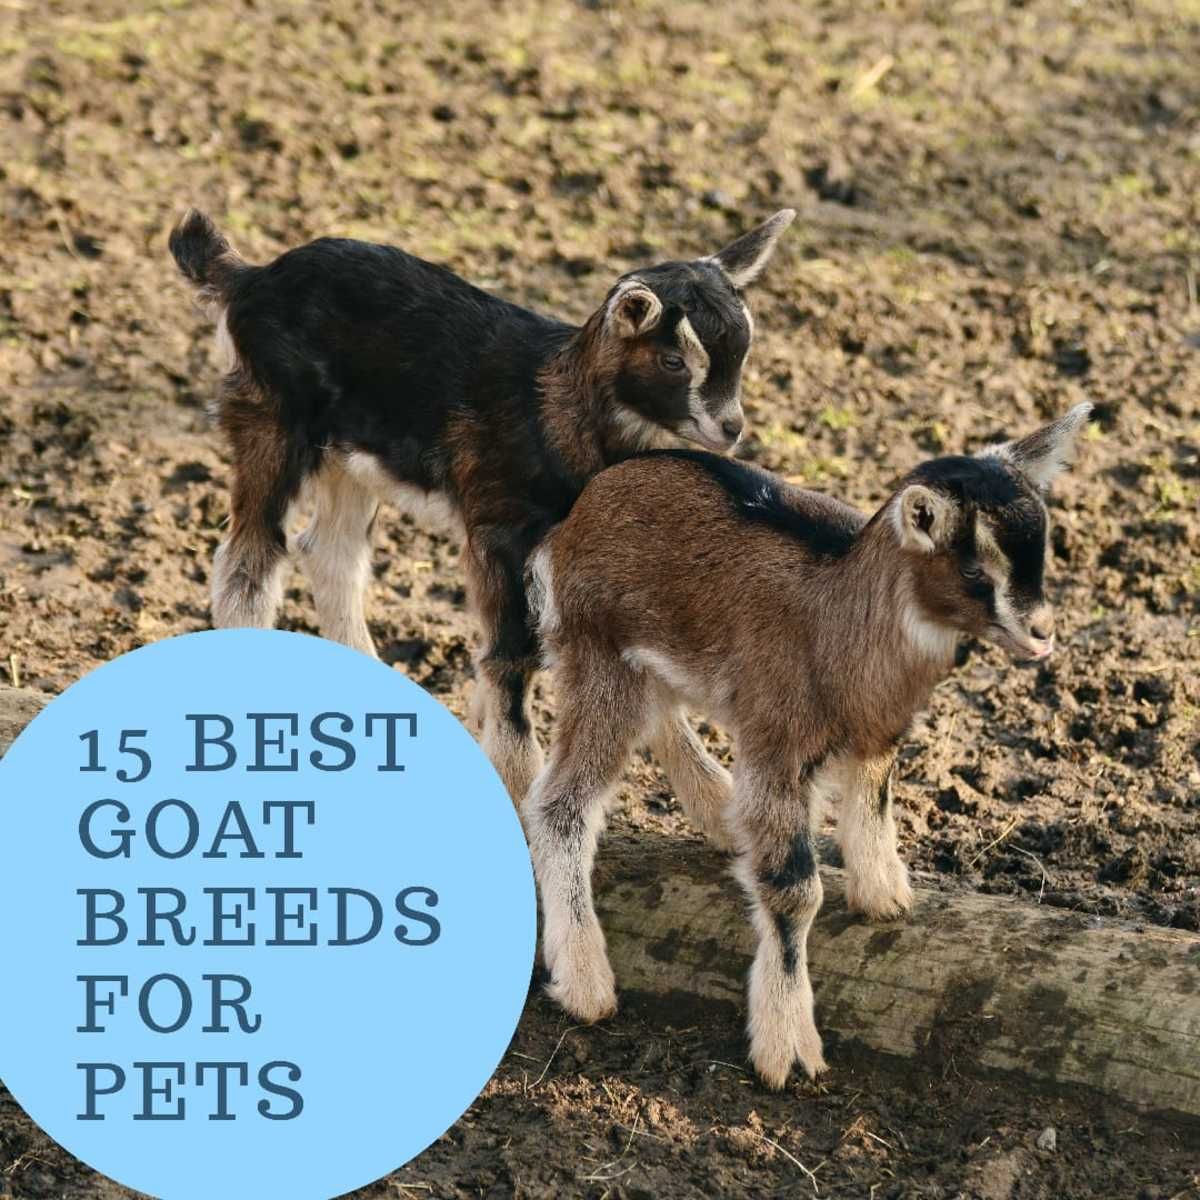 15 Best Goat Breeds for Pets